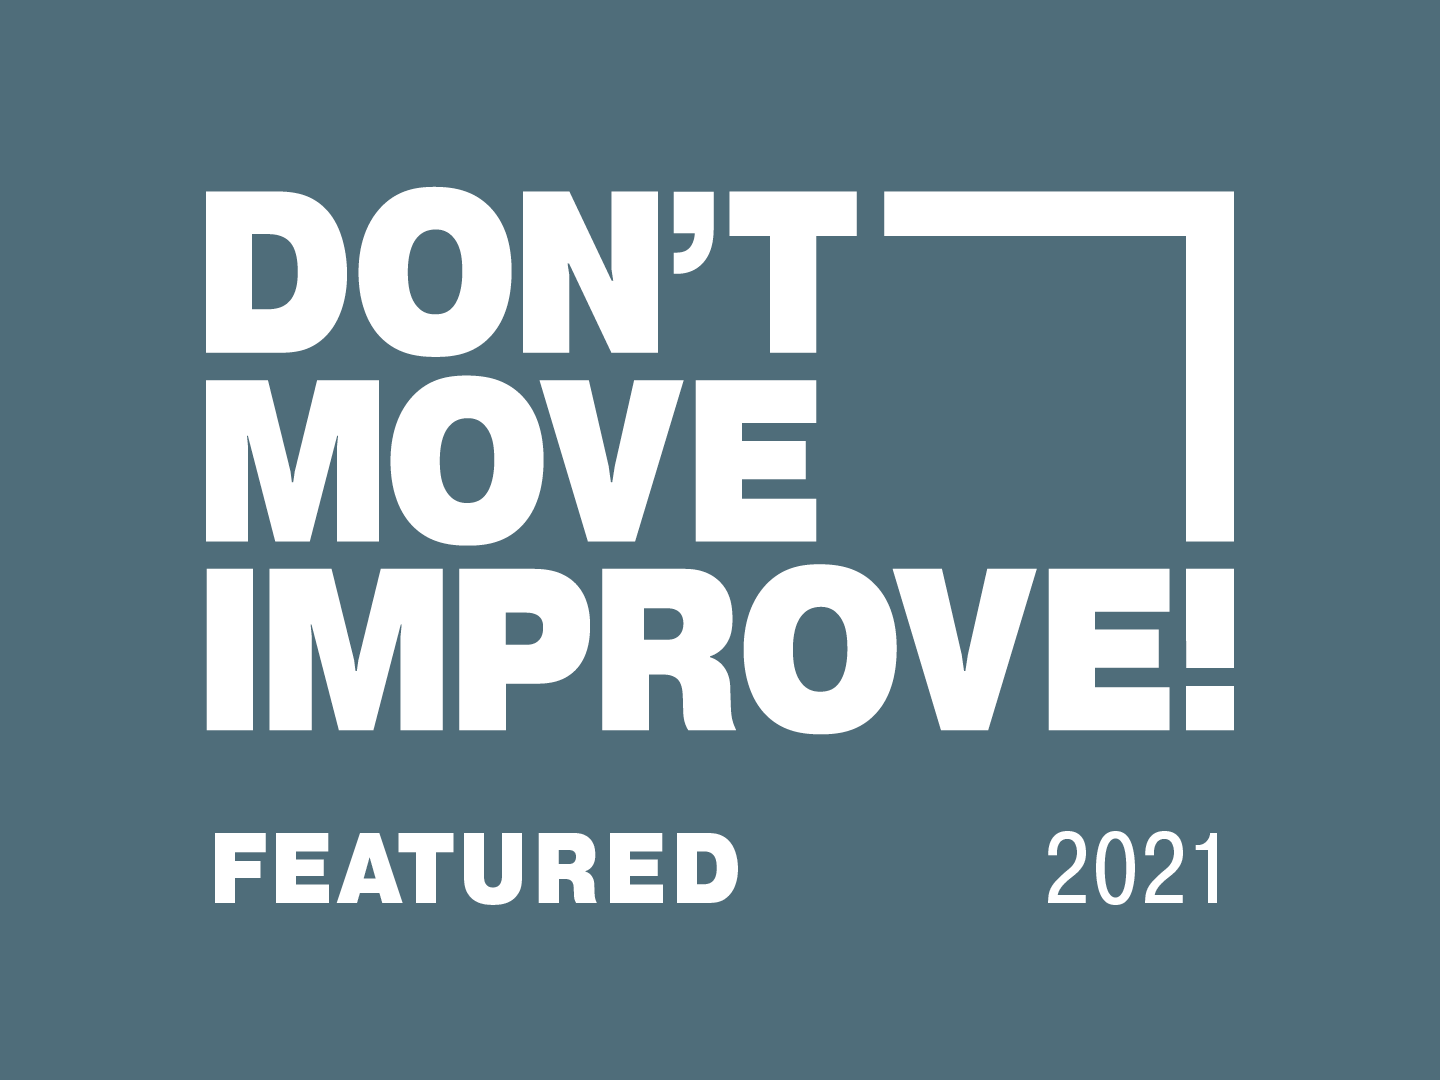 Featured in Don't Move, Improve! 2021